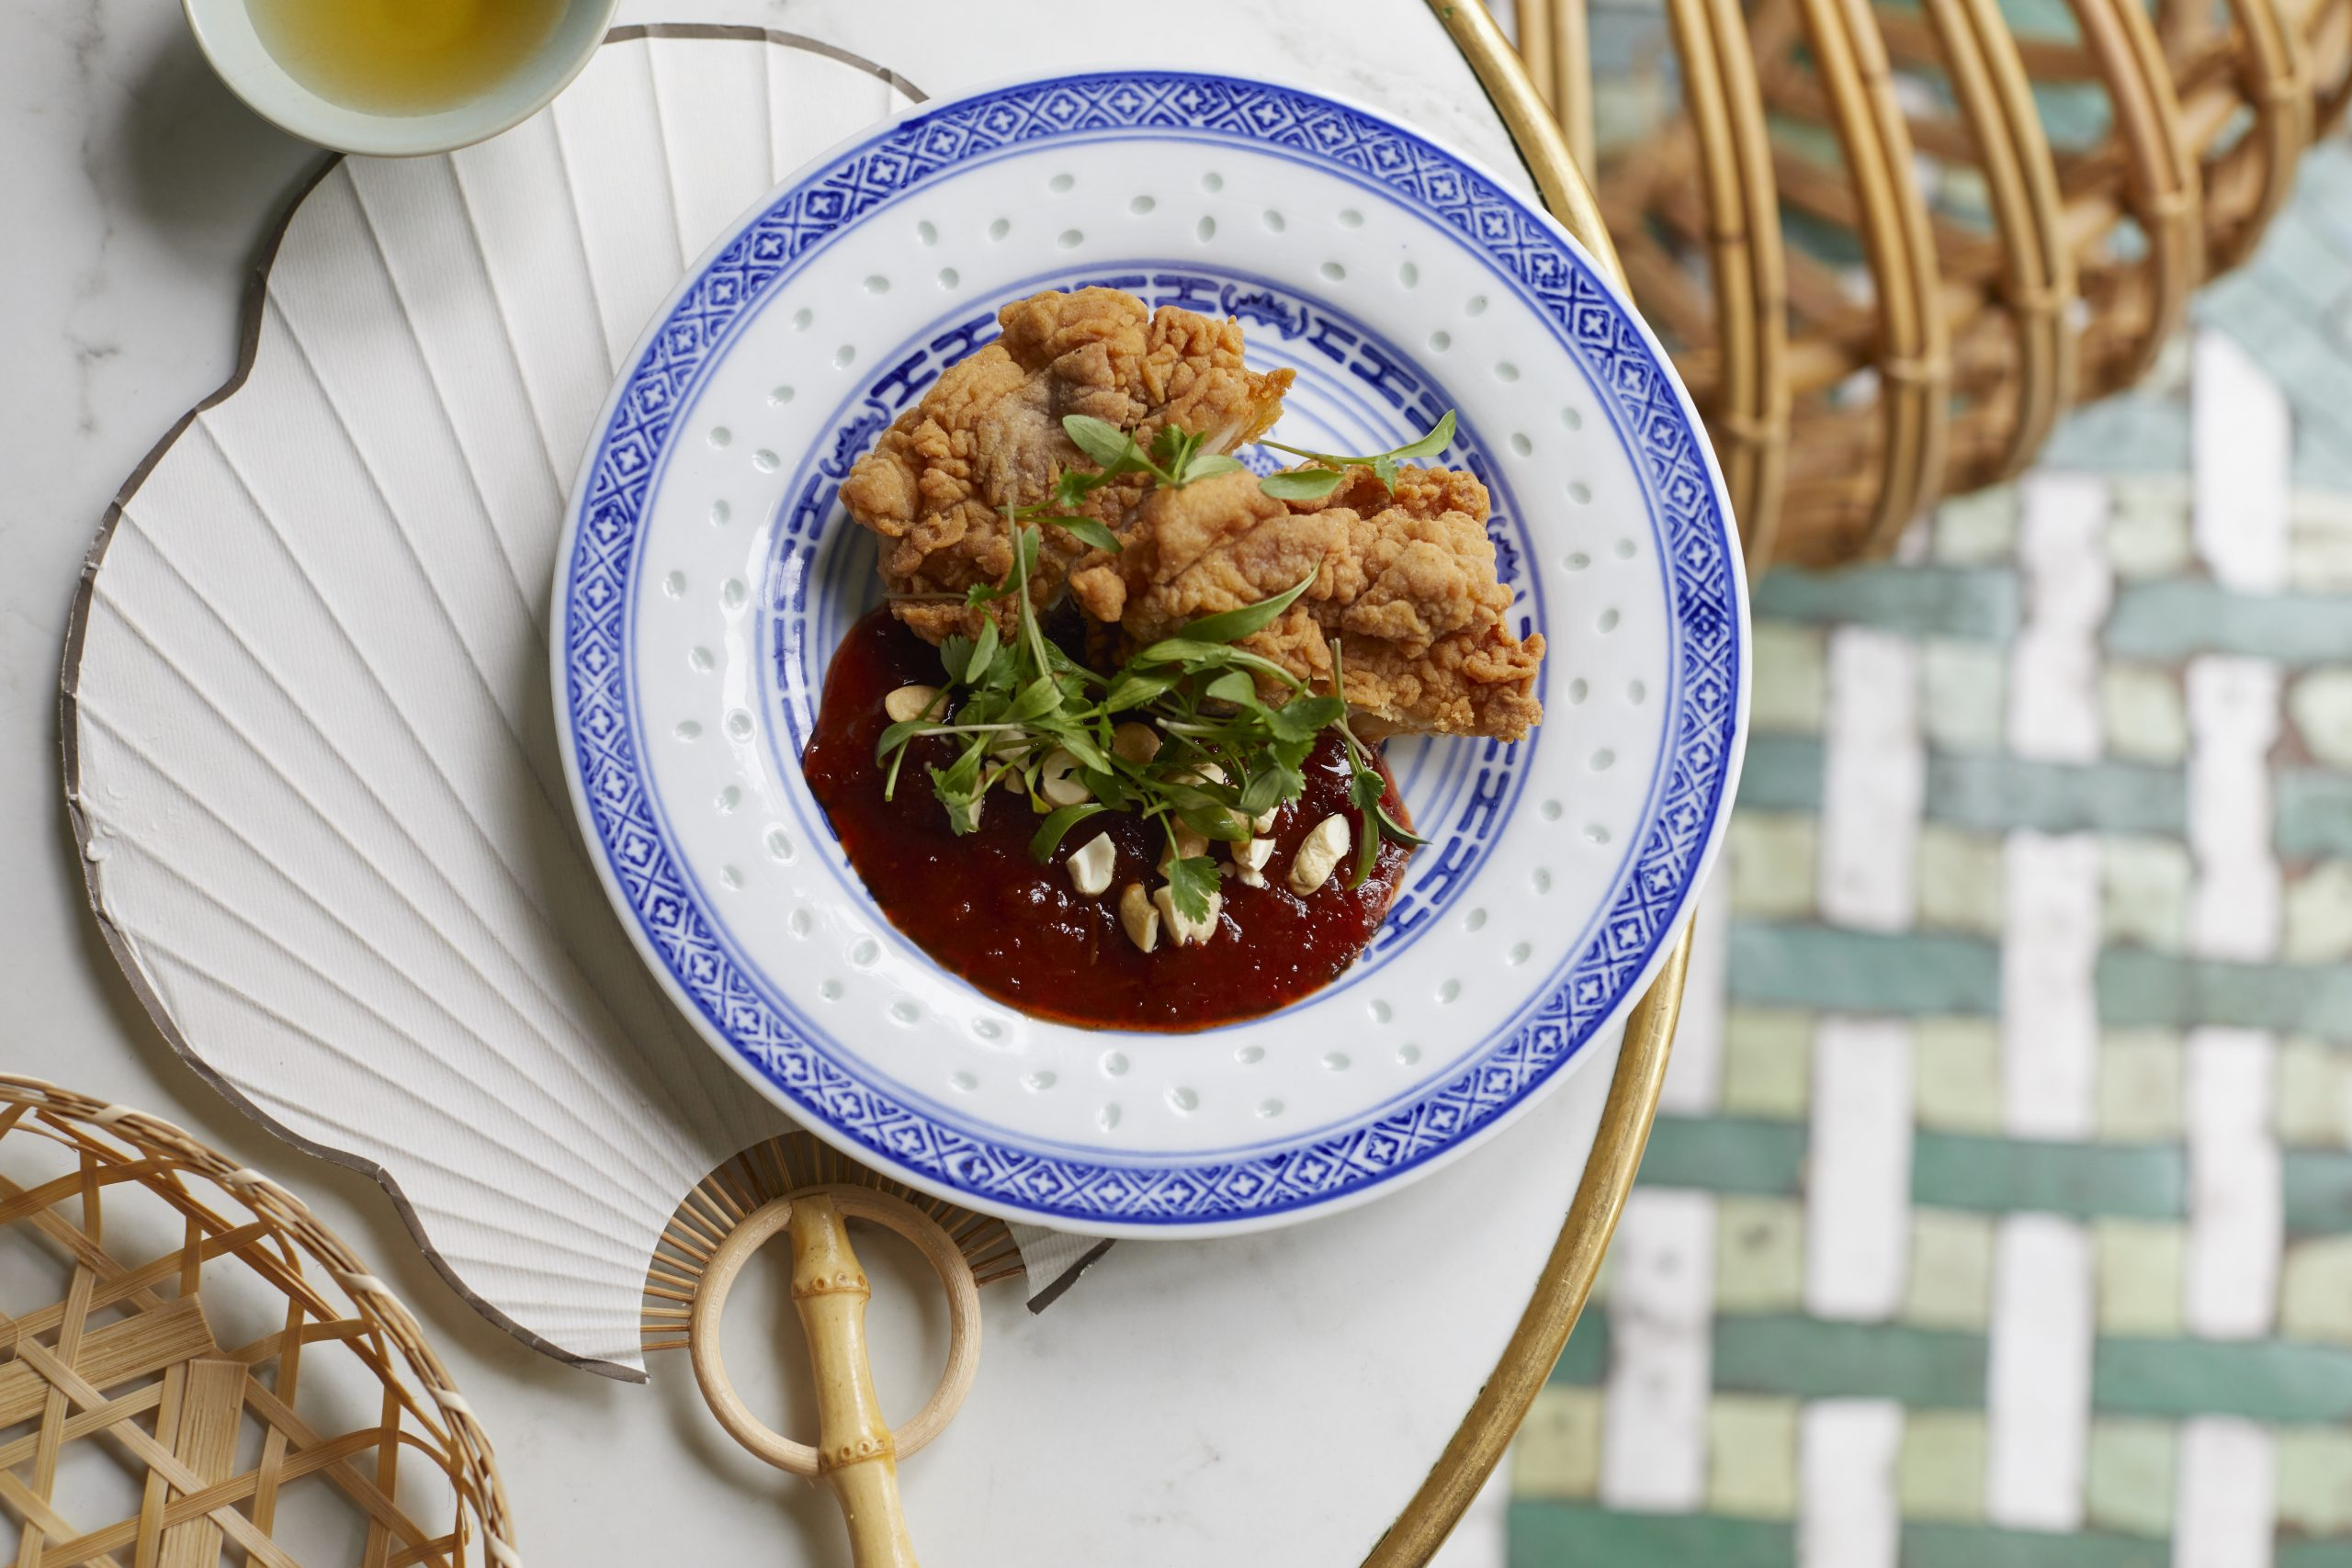 Deep fried chicken on a china plate, topped with cashews and coriander.